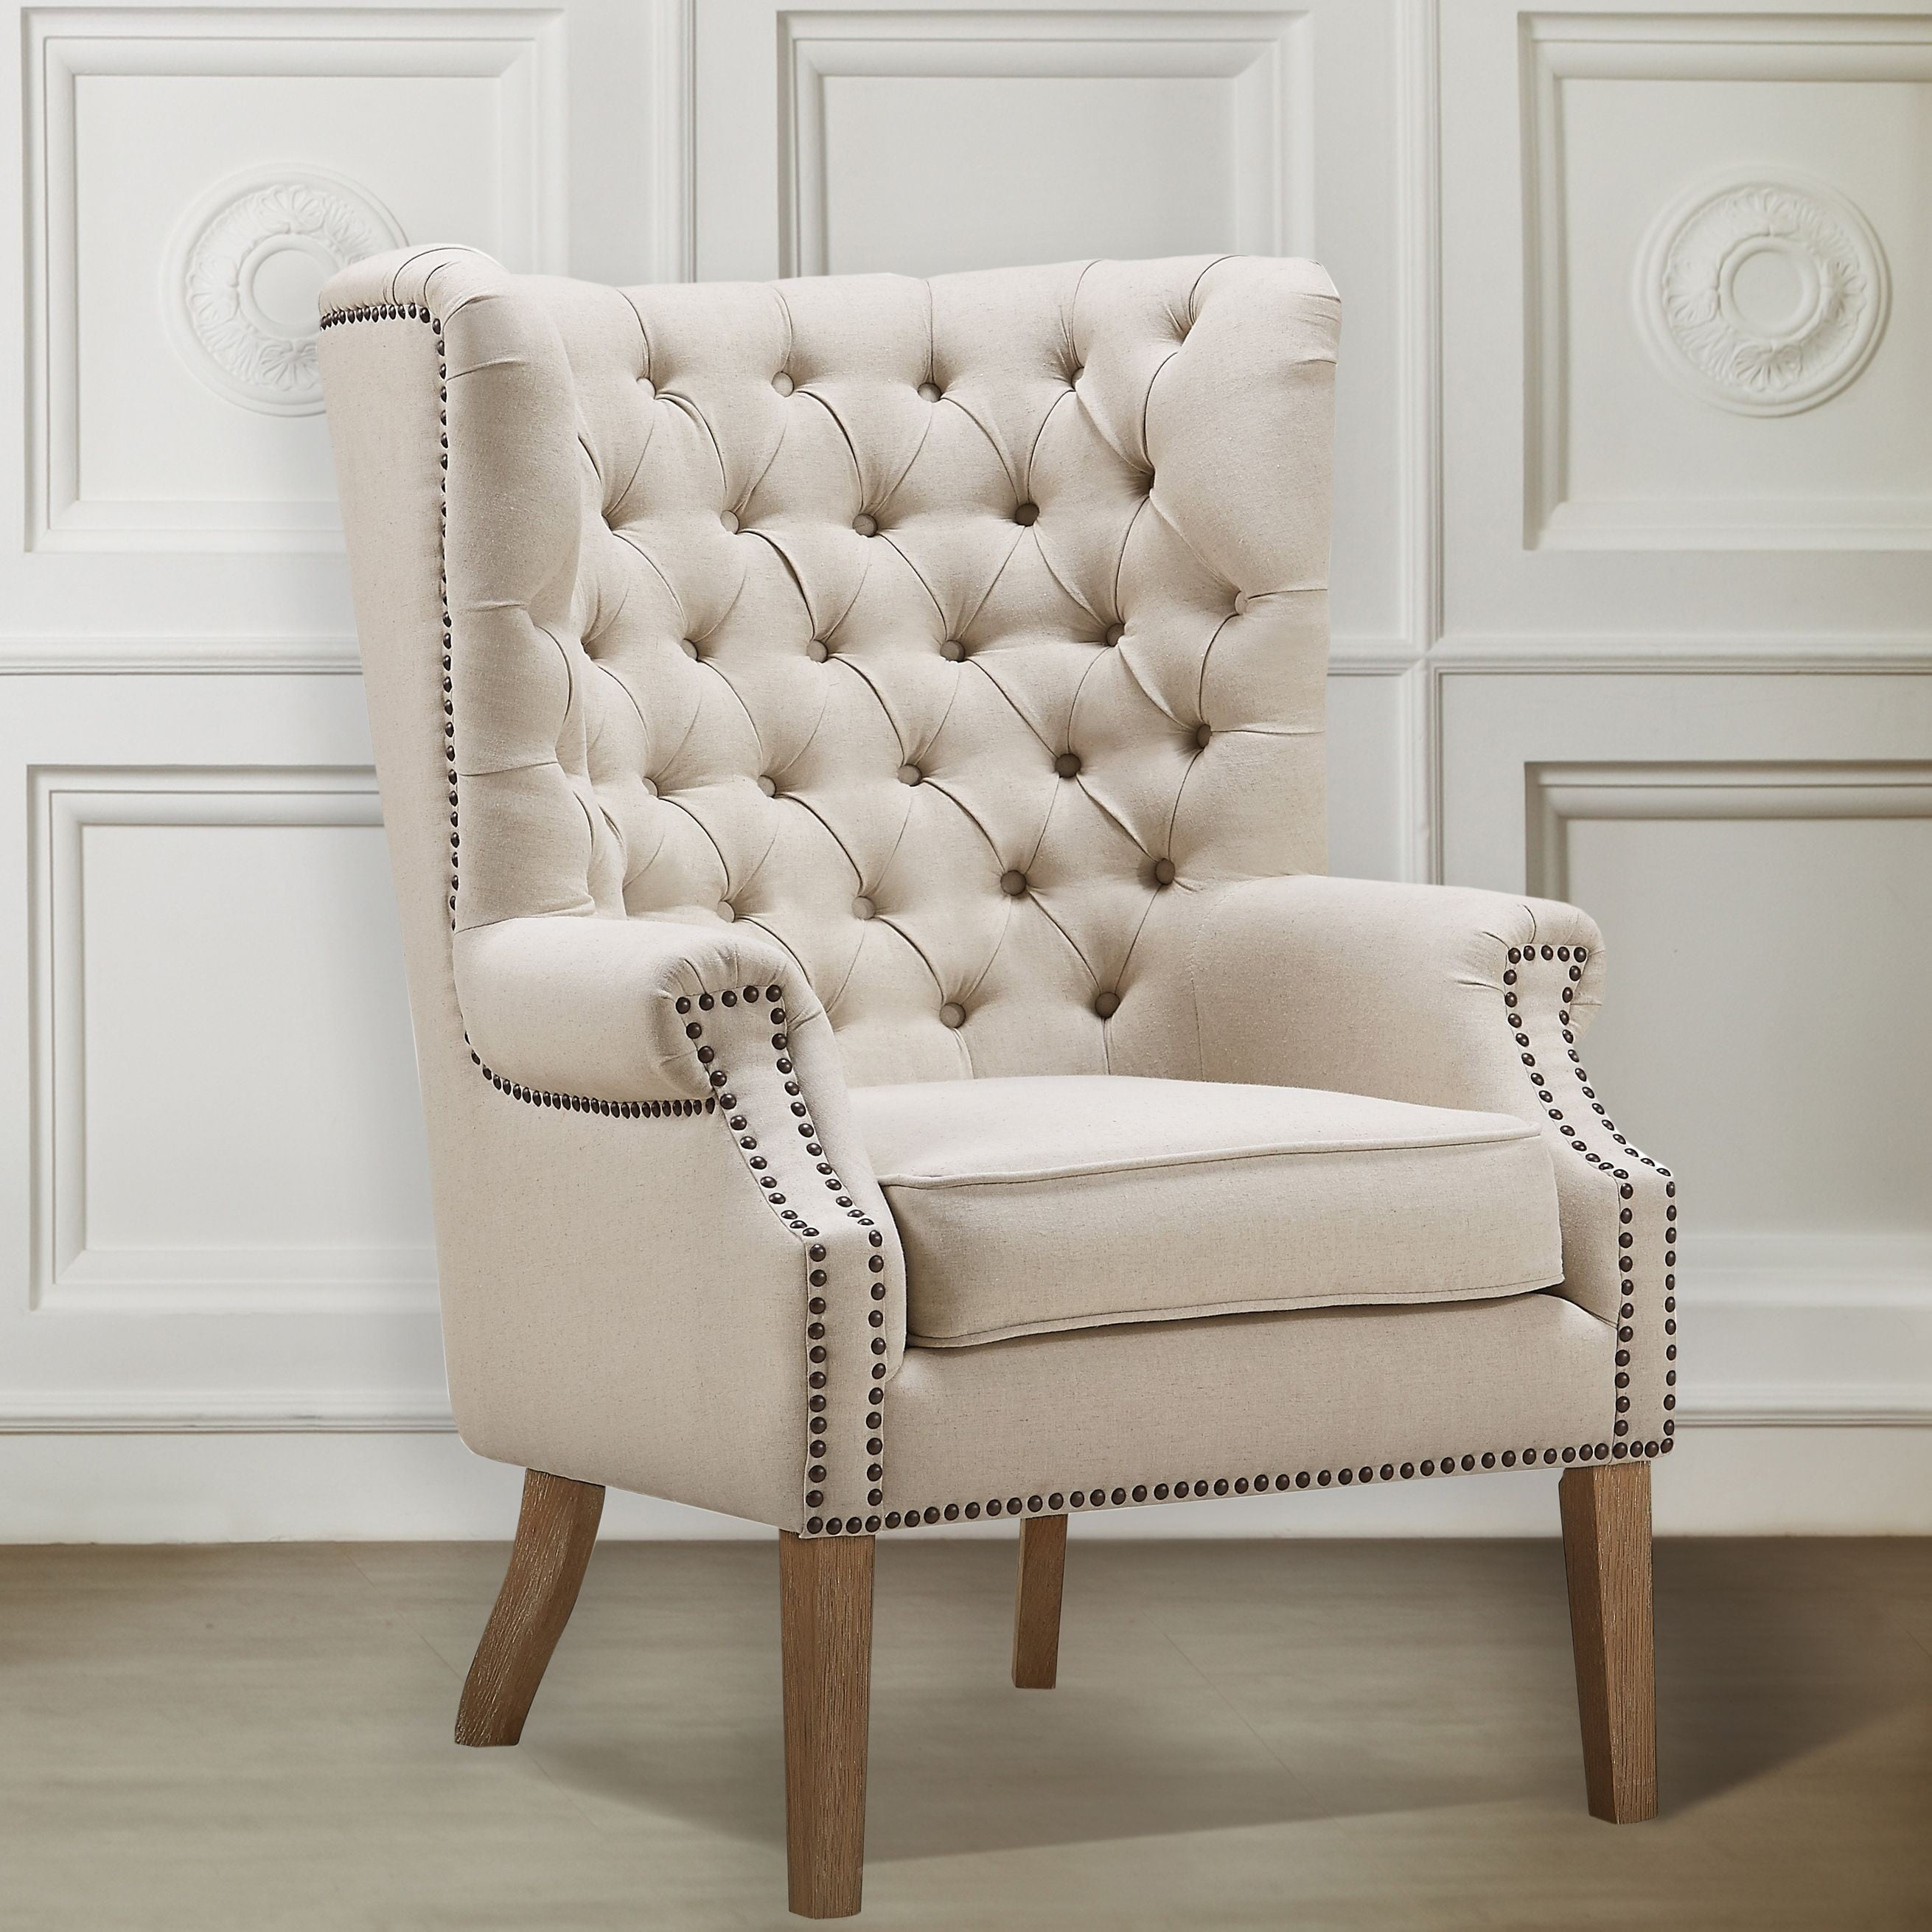 Linen Chair Abe Beige Linen Wing Chair From Tov Tov A2041 Coleman